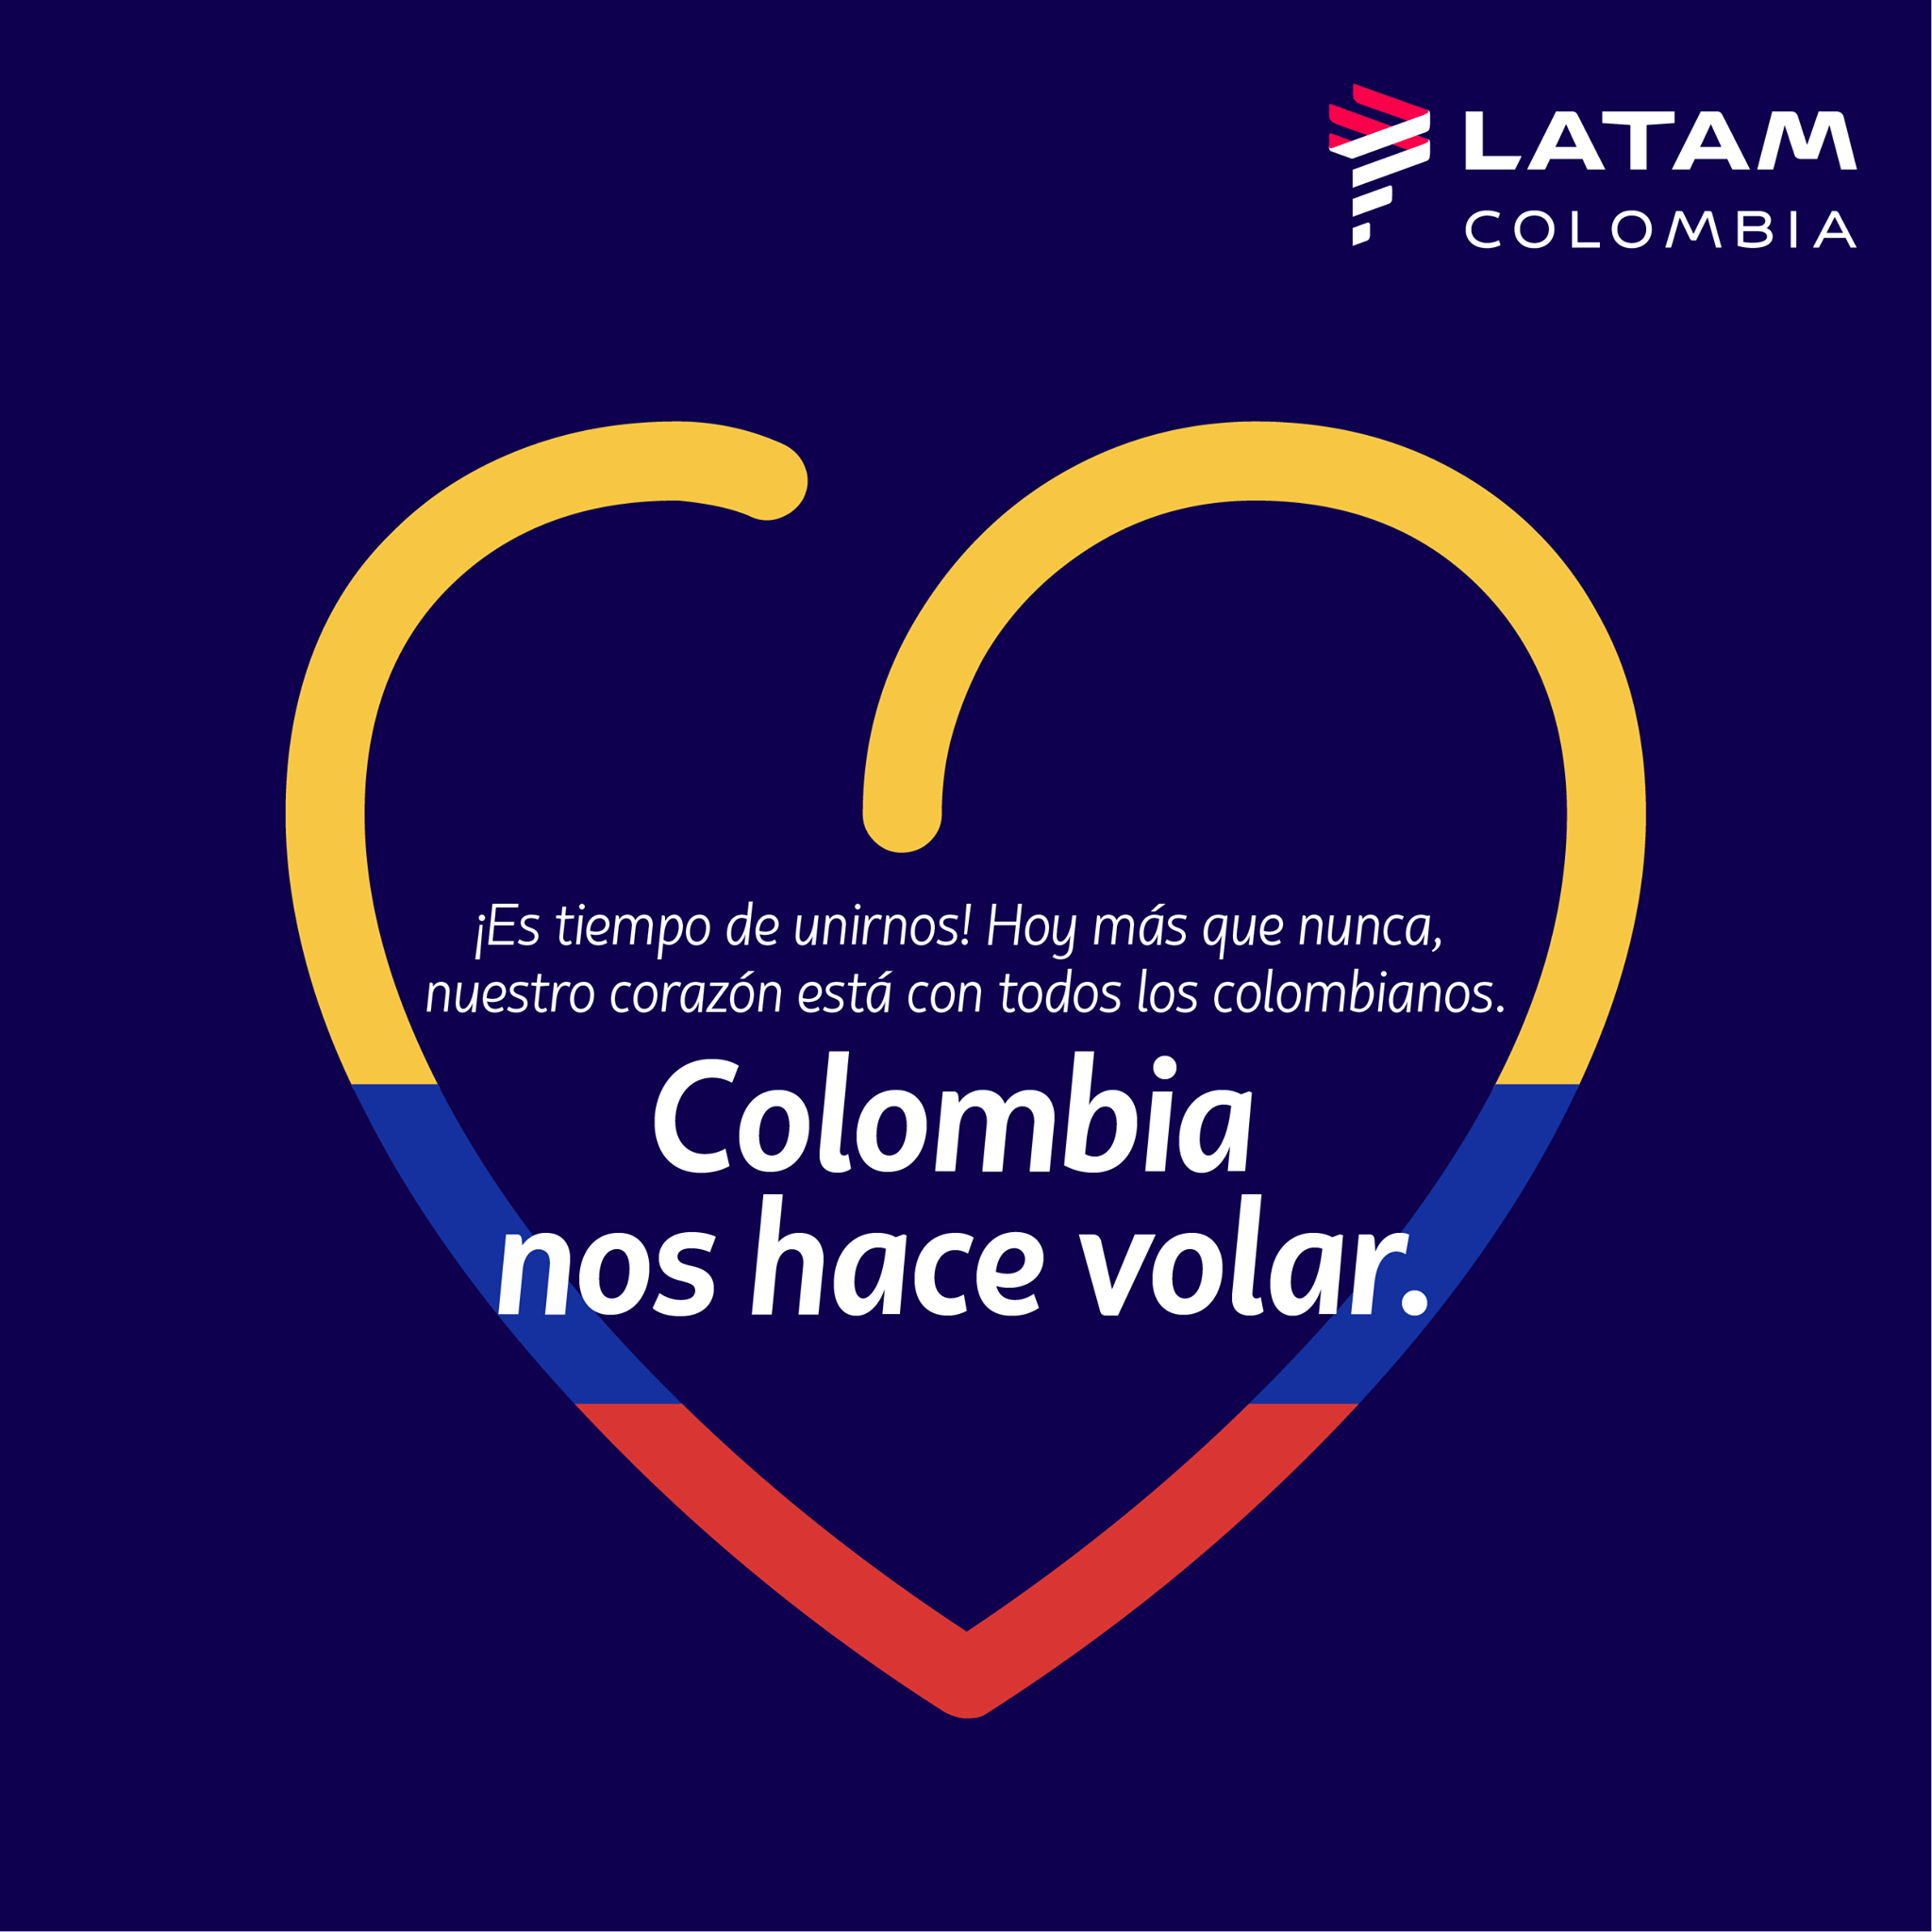 Colombia nos hace volar: Latam Airlaines